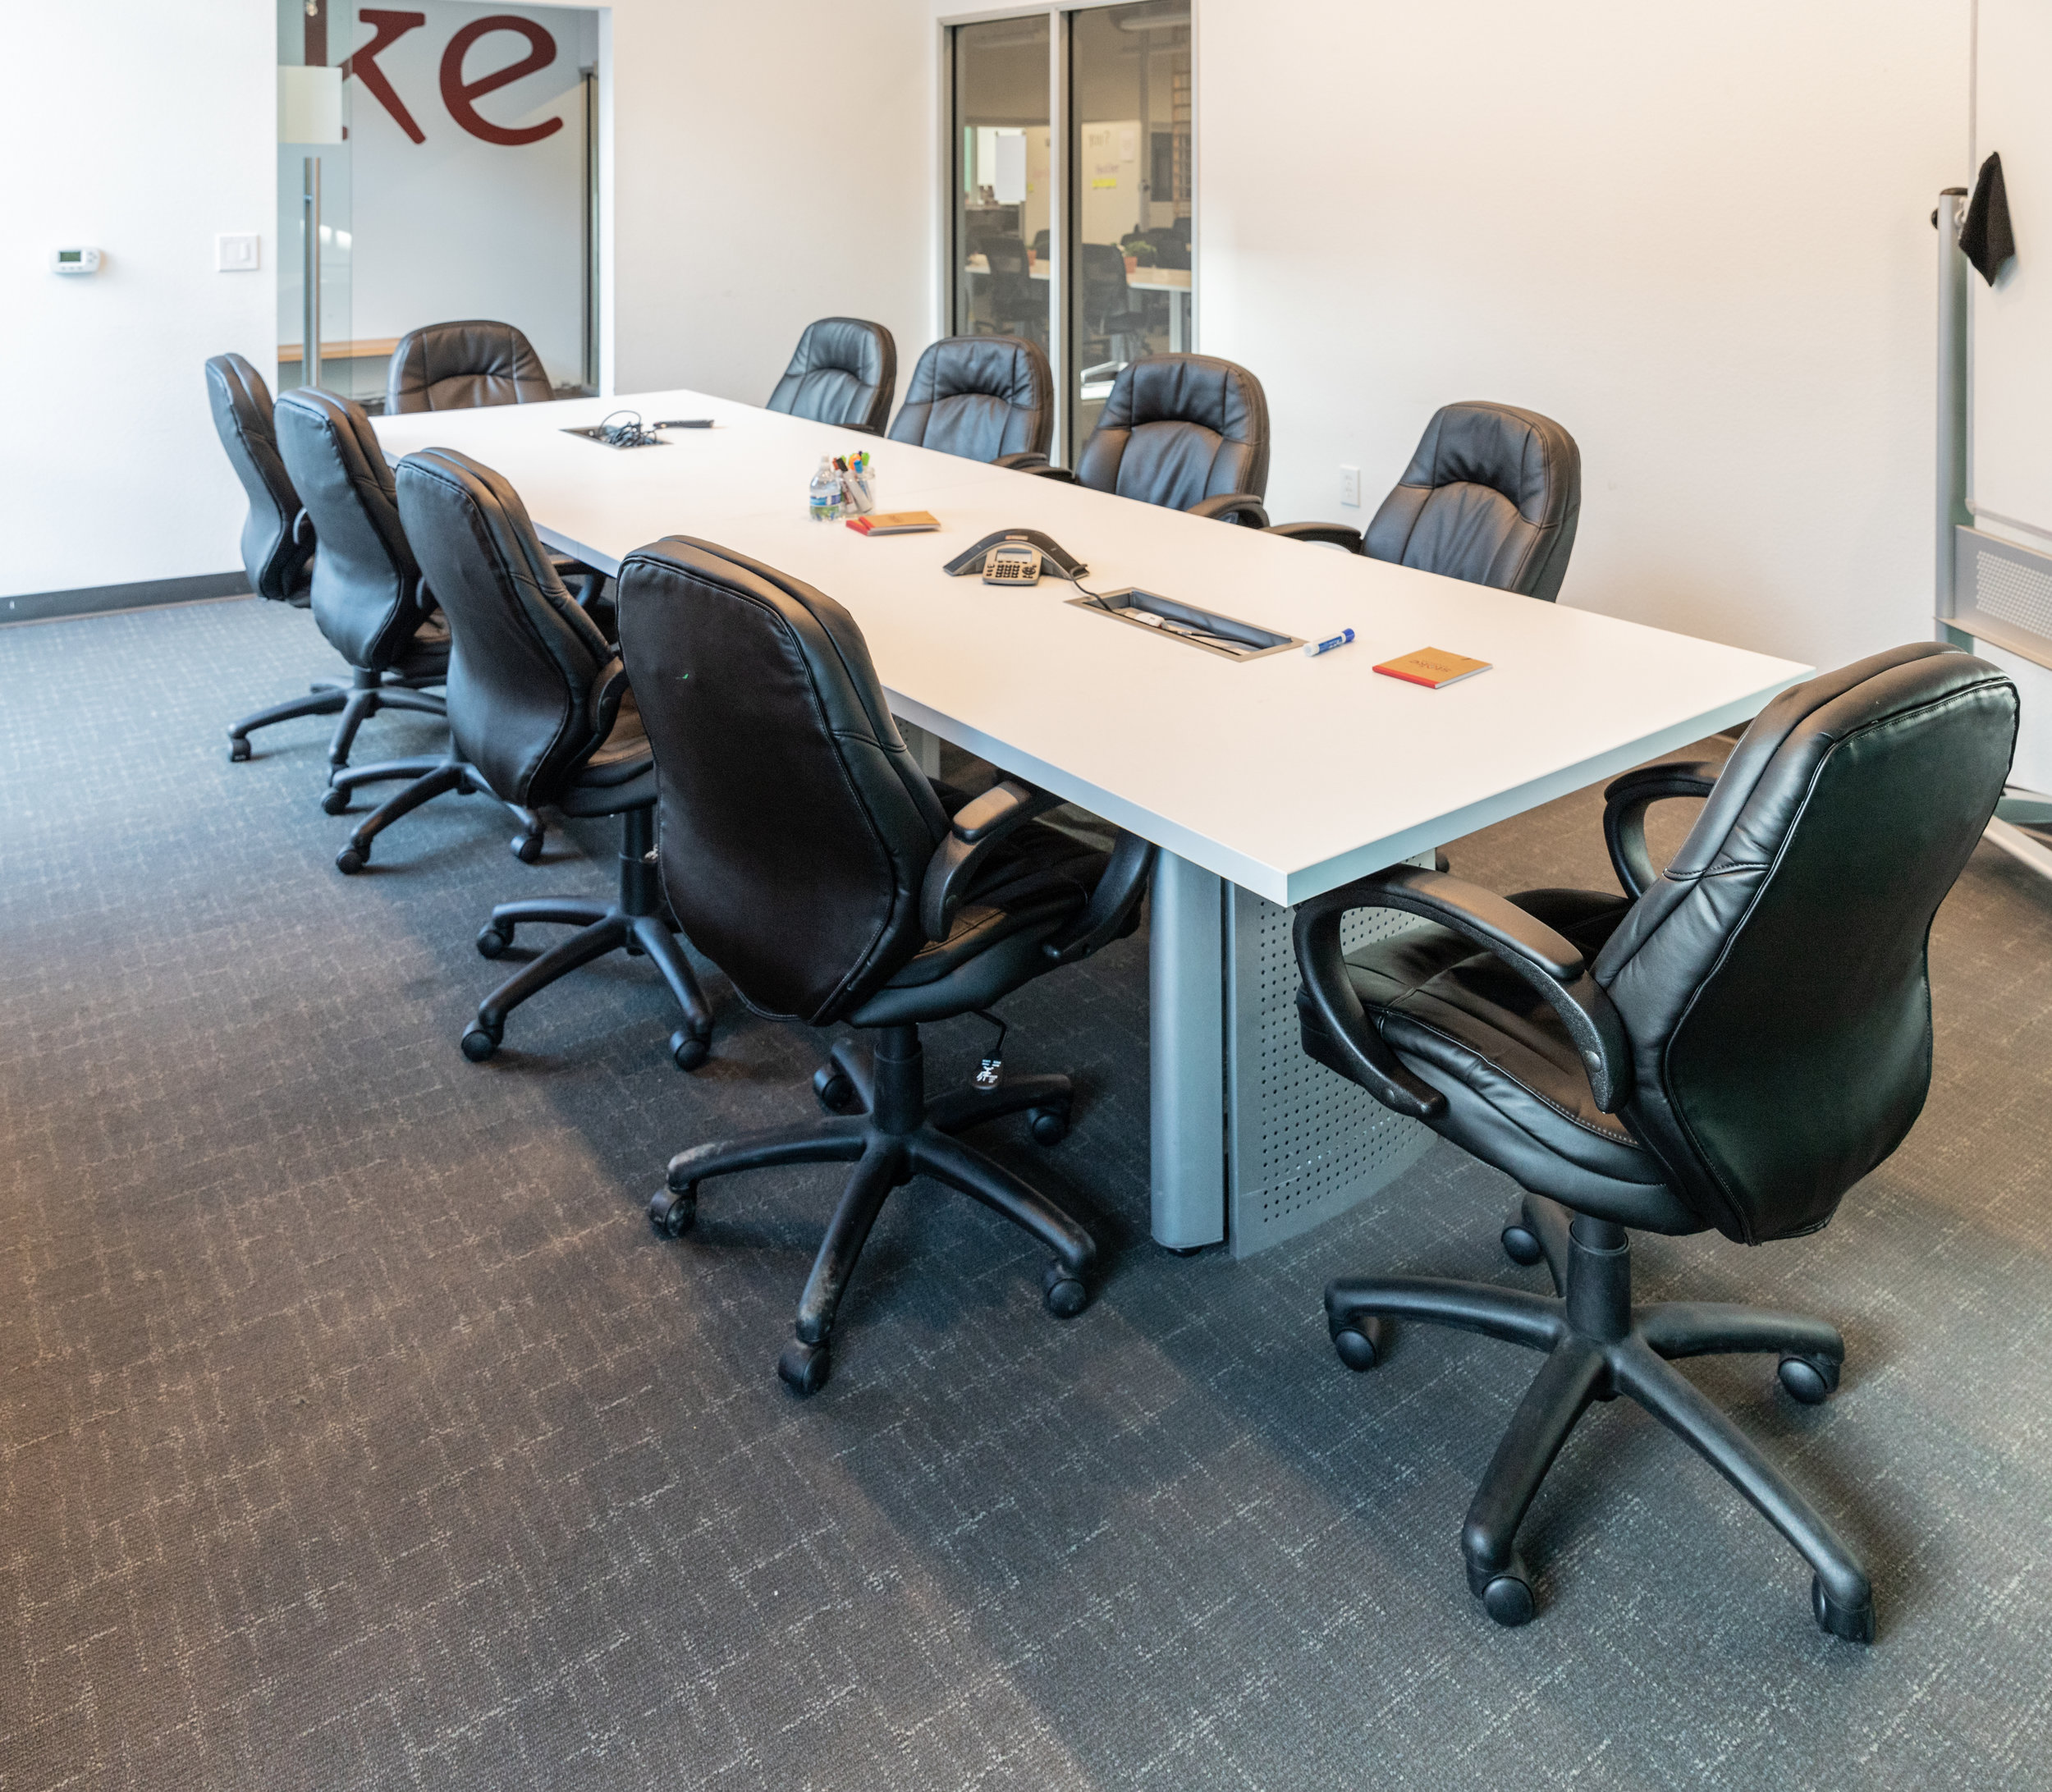 Conference Room 1 at Stoke